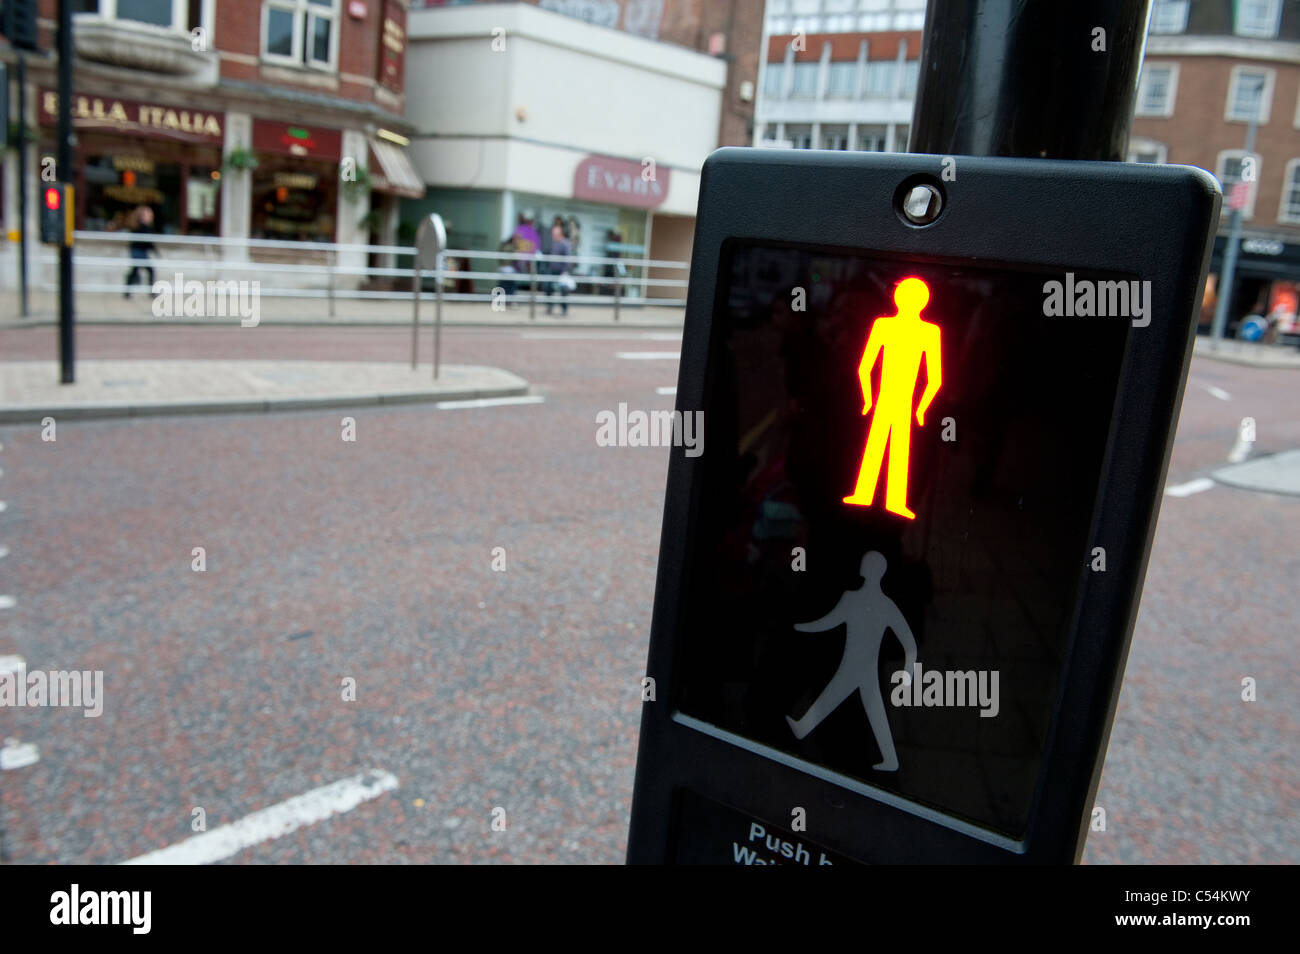 Red man symbol at a pedestrian crossing indicating it is not safe to cross the road. - Stock Image